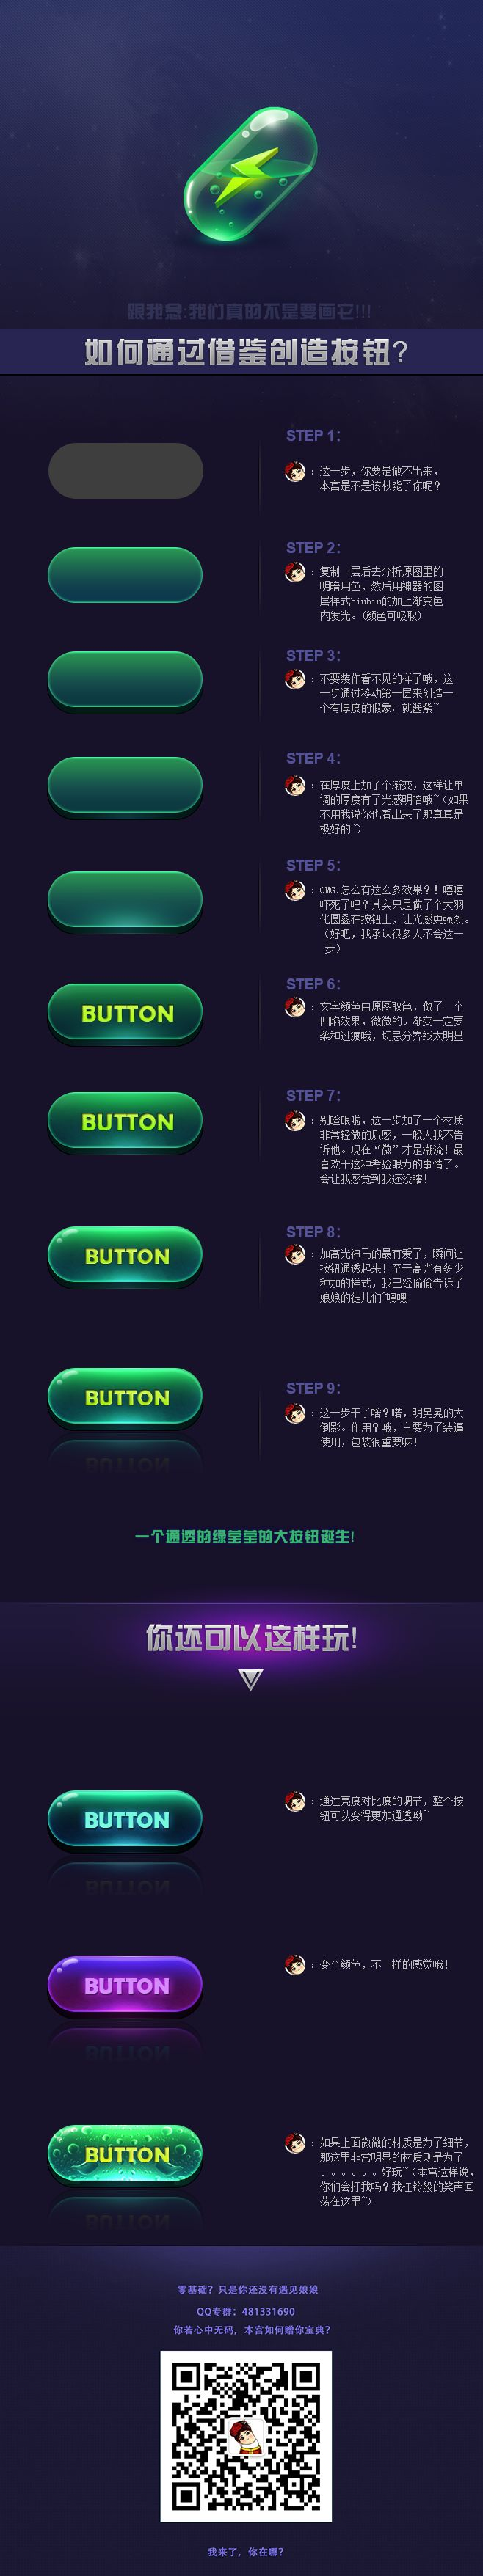 Goddess UI School - transparent button tutorial